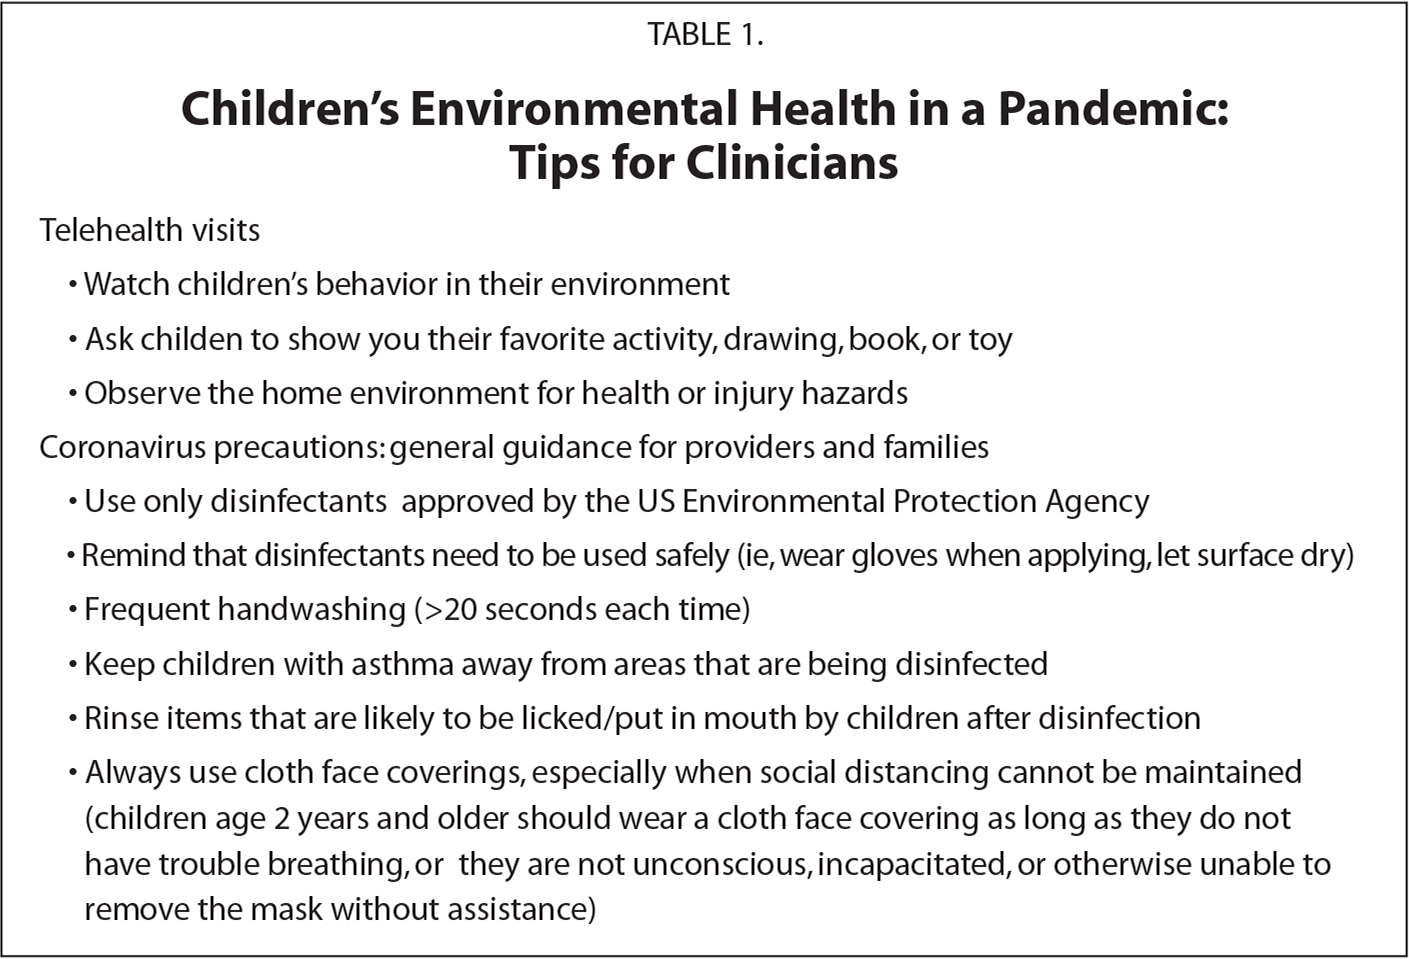 Children's Environmental Health in a Pandemic: Tips for Clinicians